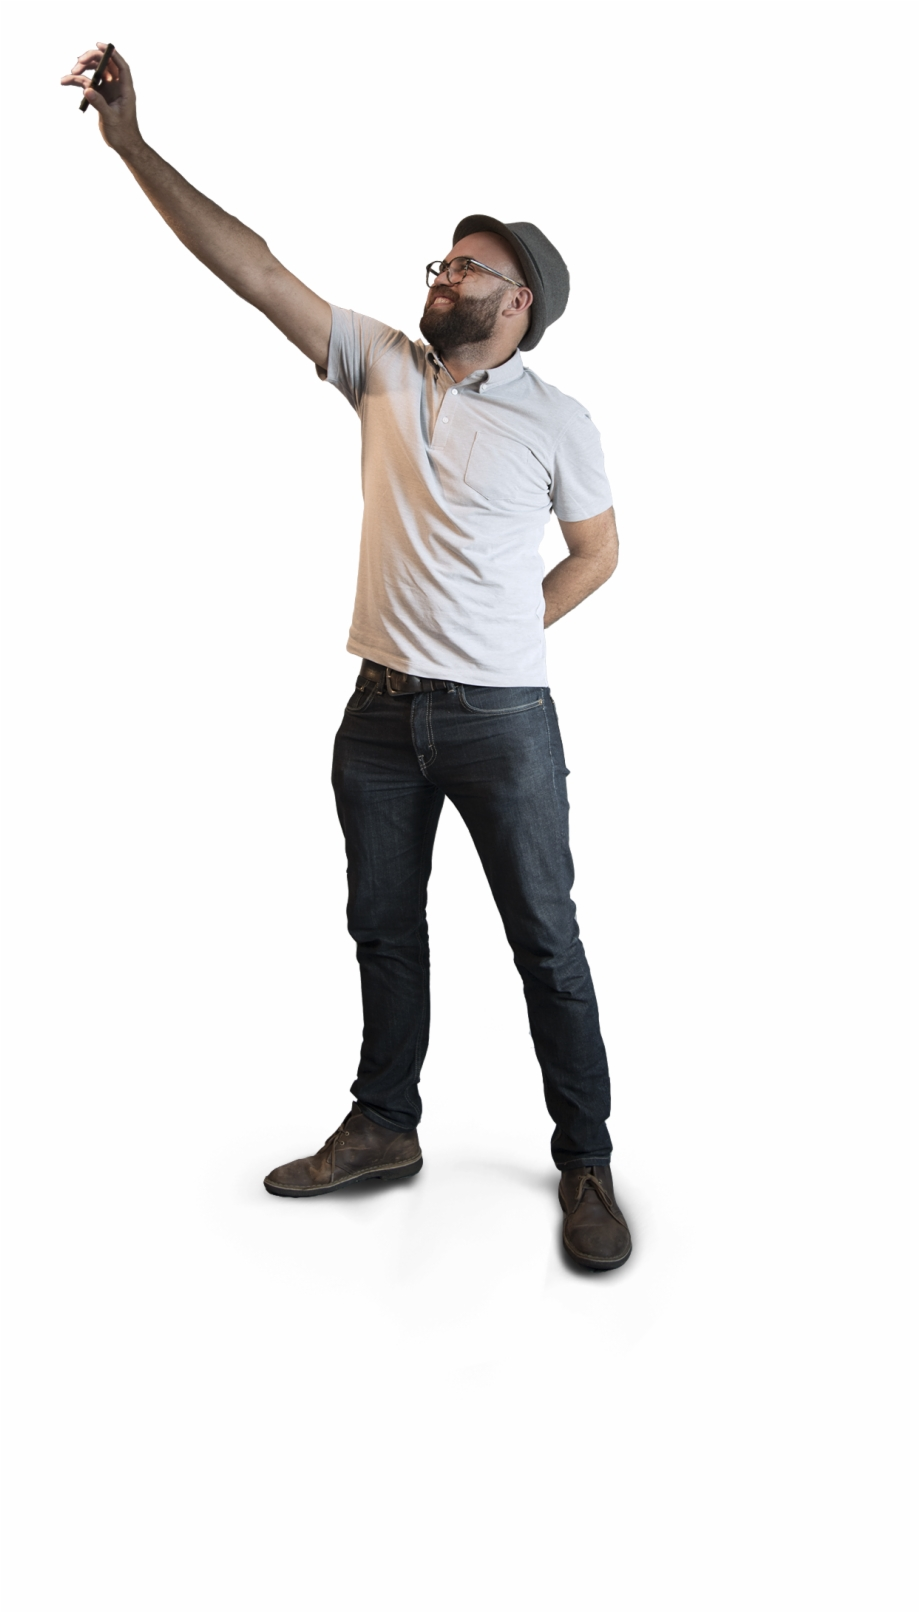 Person Taking Selfie Png, Transparent Png Download For Free.